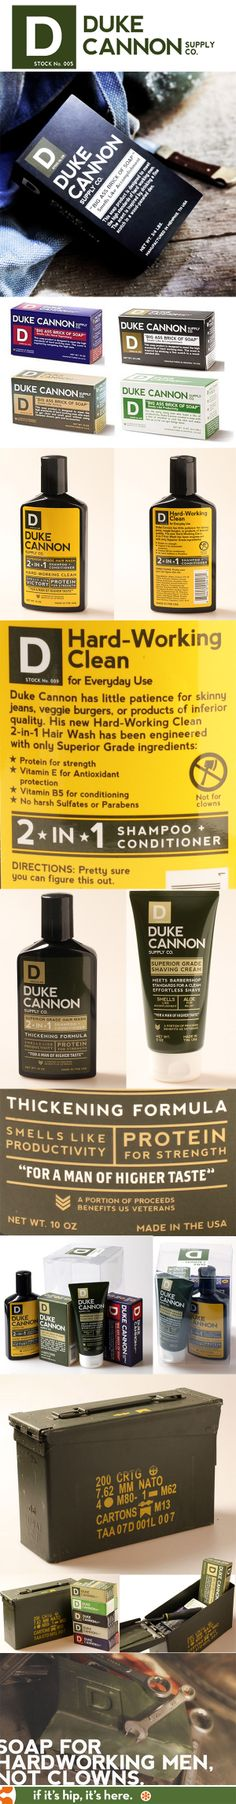 Branding and packaging doesn't get much smarter/funnier than these products from Duke Cannon Supply Co.